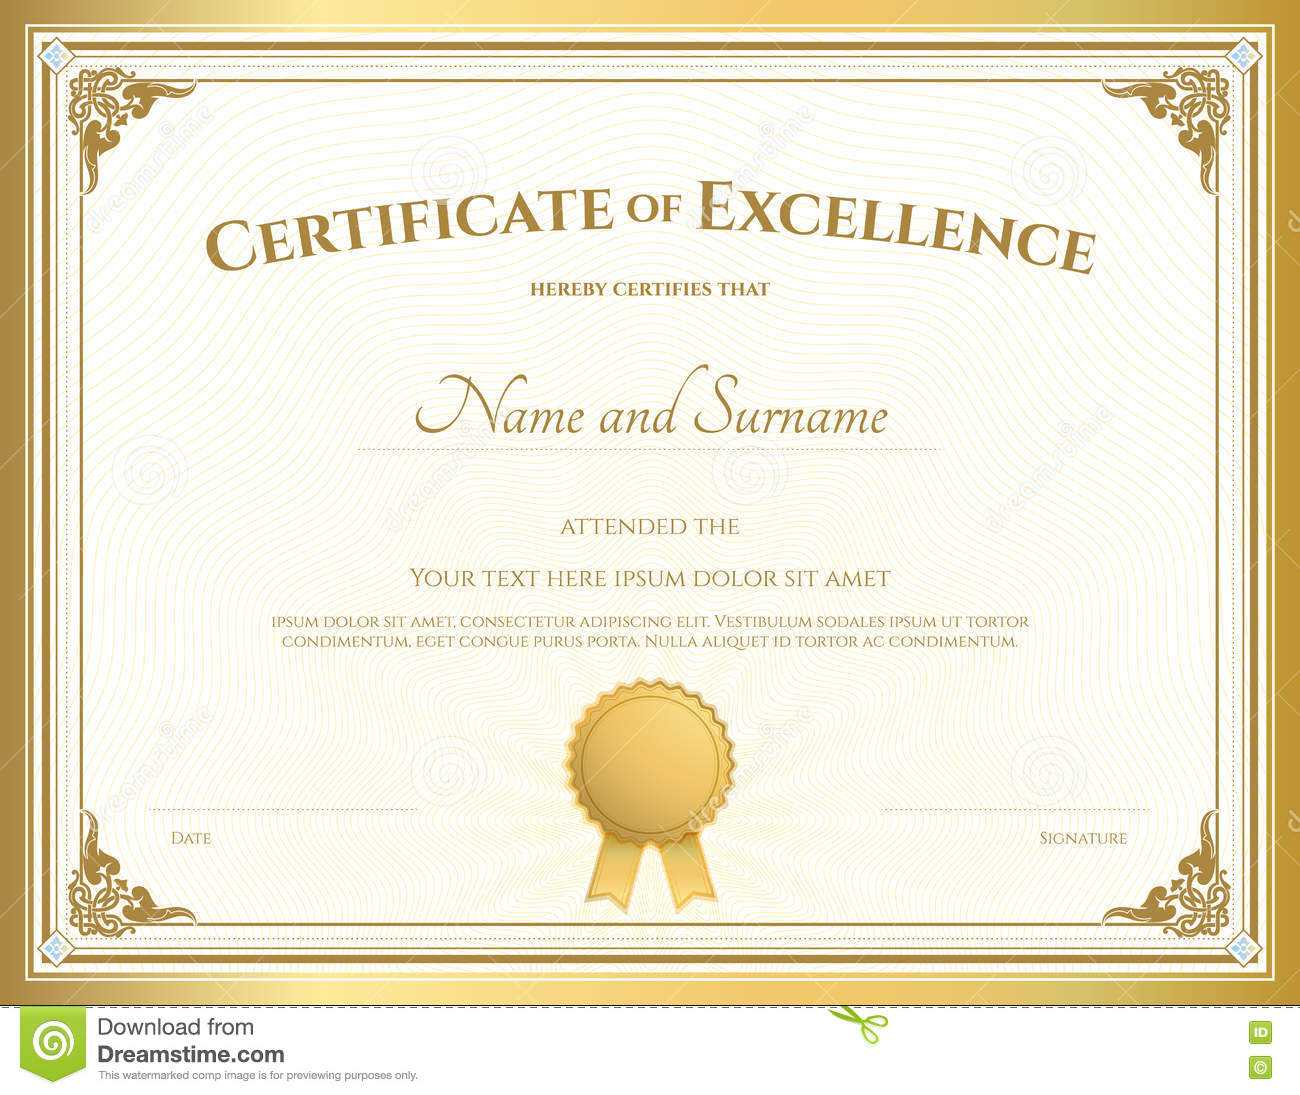 Certificate Of Excellence Template With Gold Border Stock in Free Certificate Of Excellence Template